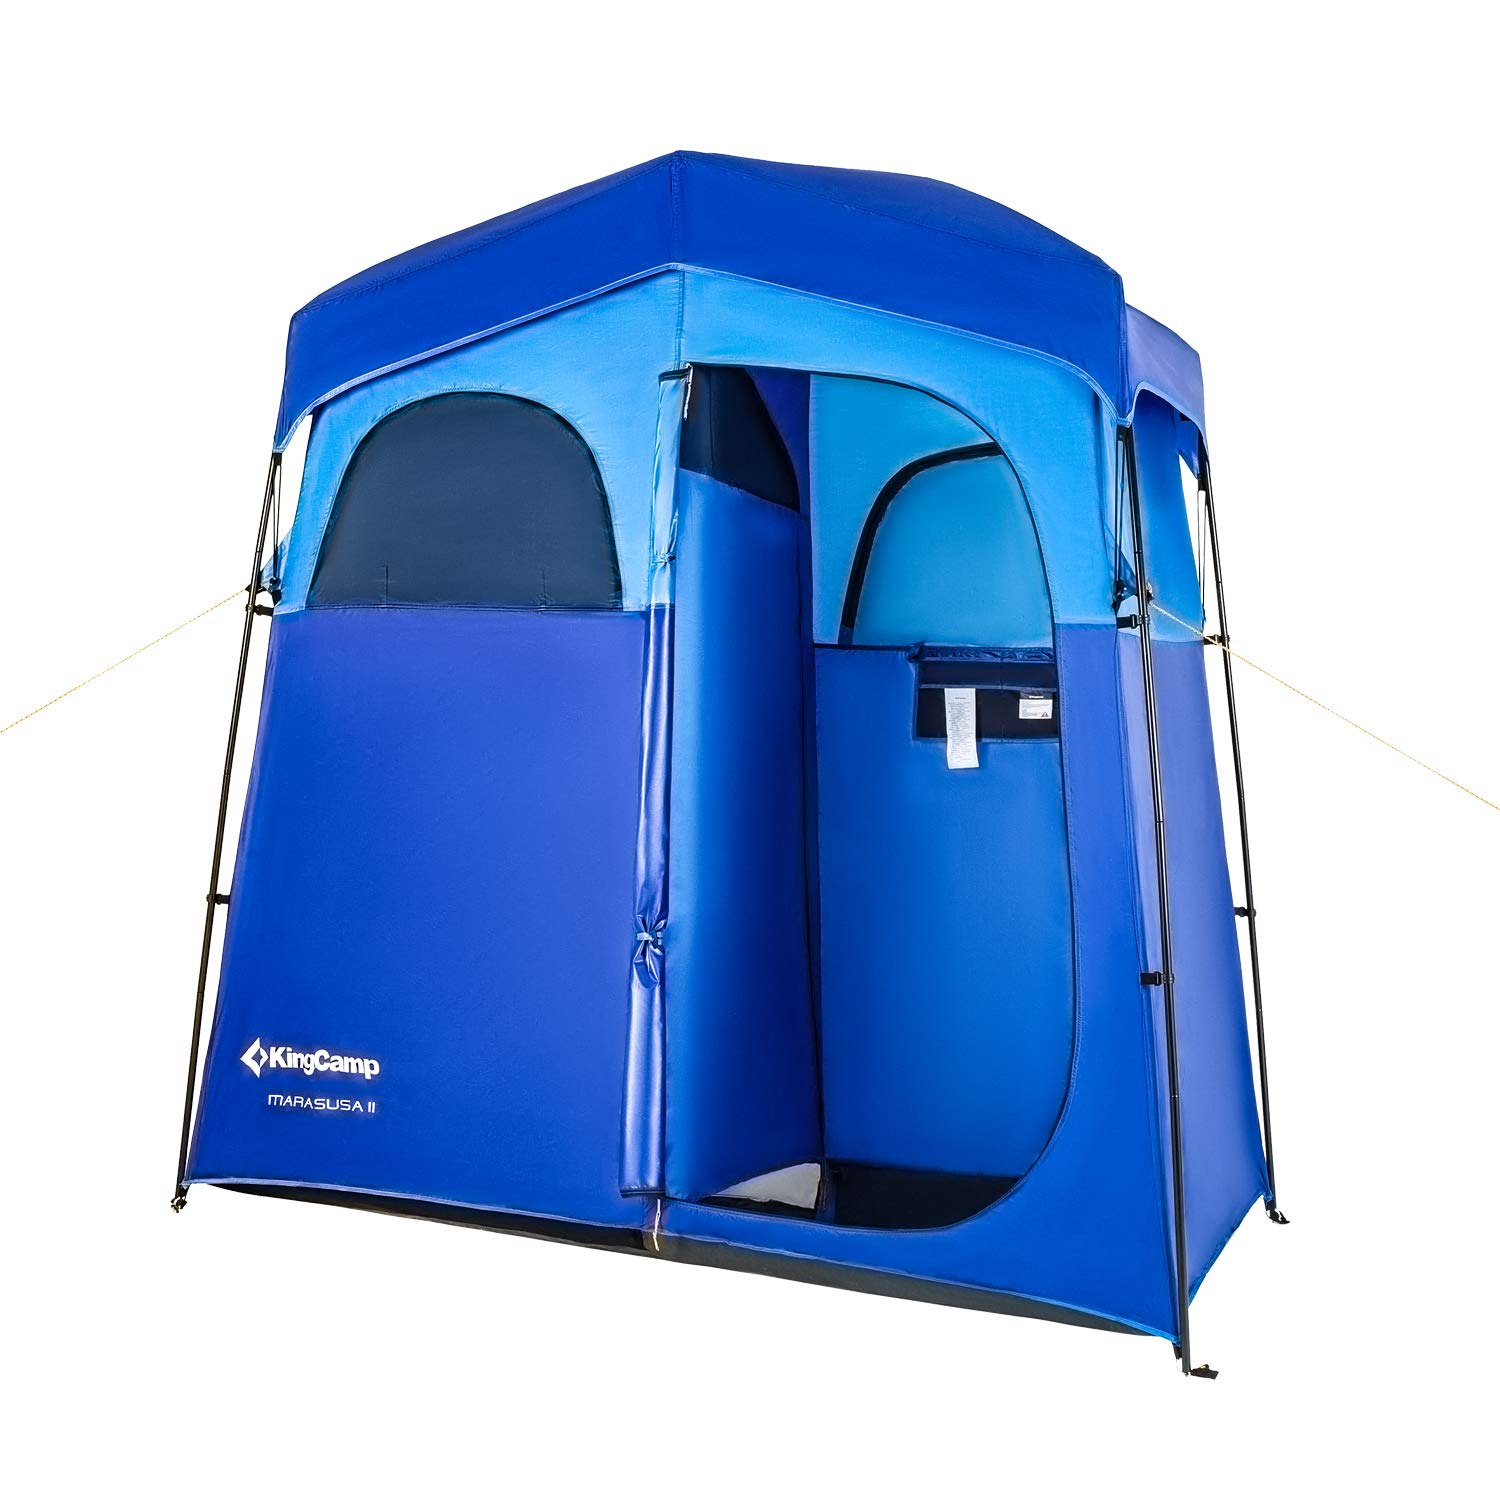 KingCamp 2-Room Easy Up Portable Dressing Changing Room Shower Privacy Shelter Tent with Rain Fly by KingCamp